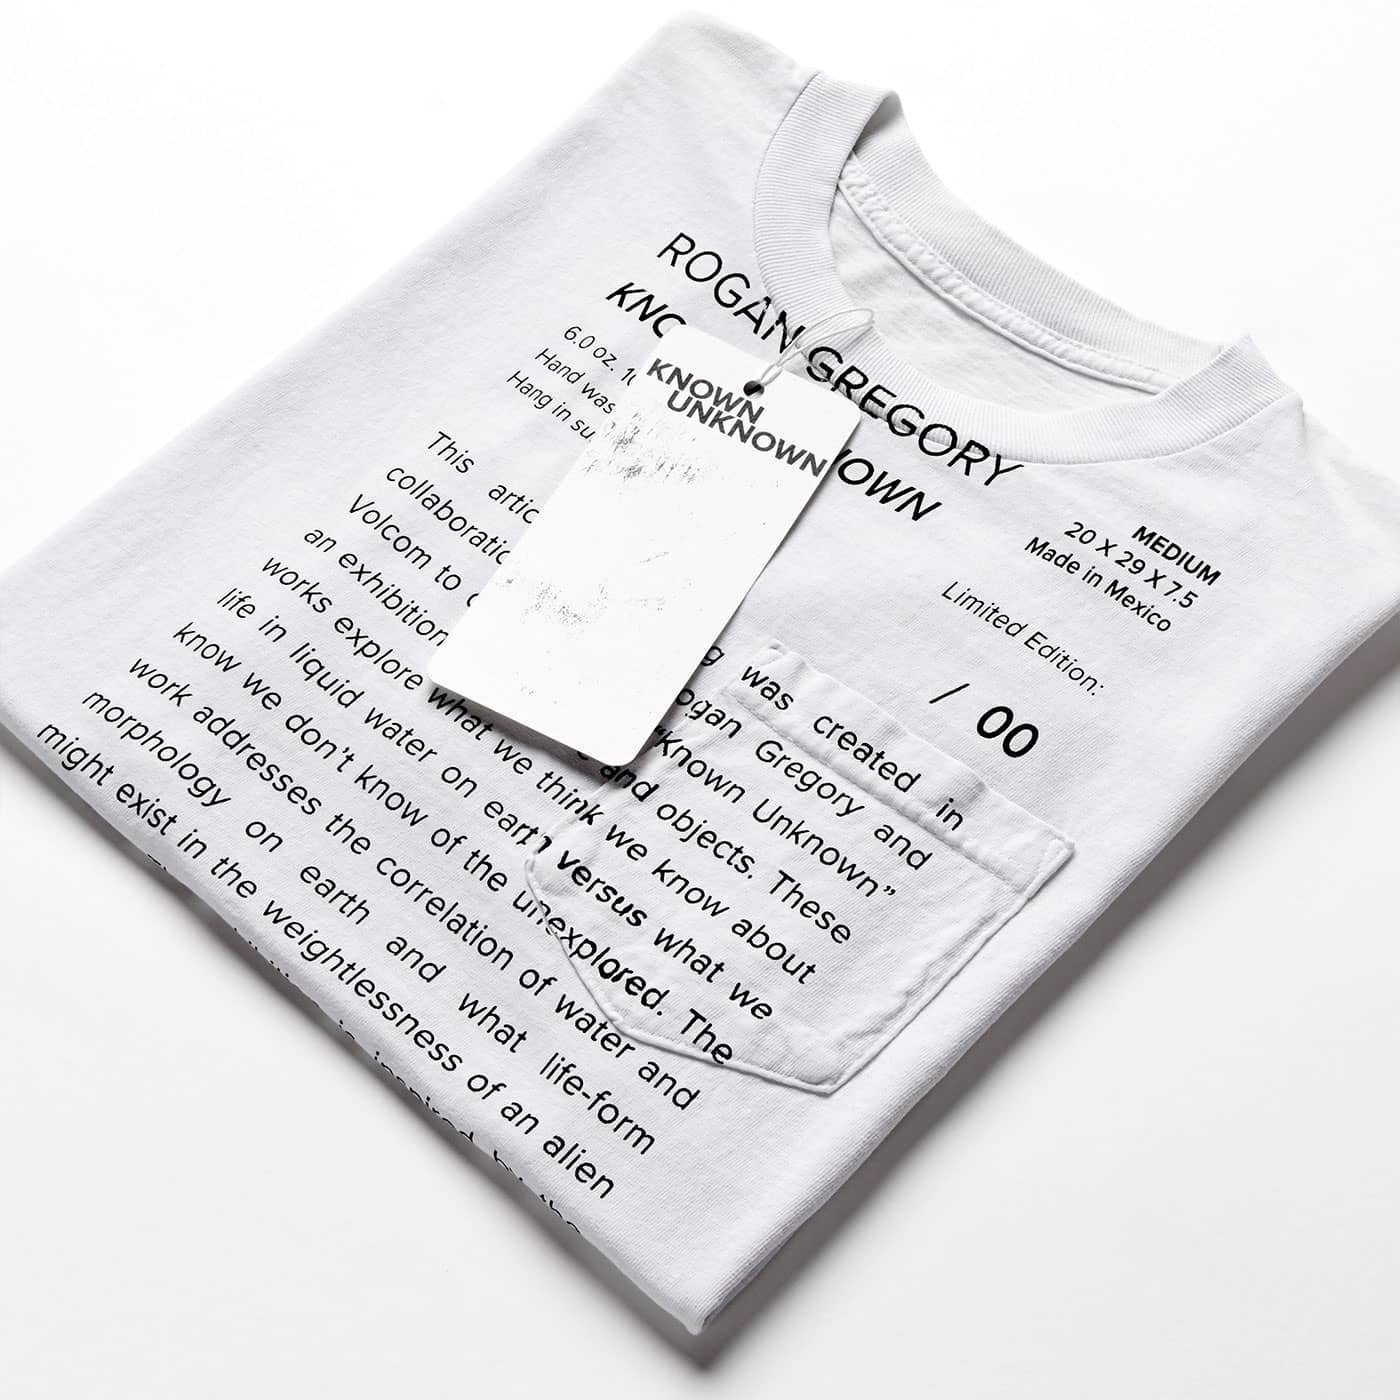 Rogan Gregory X Volcom Known Unknown Tee